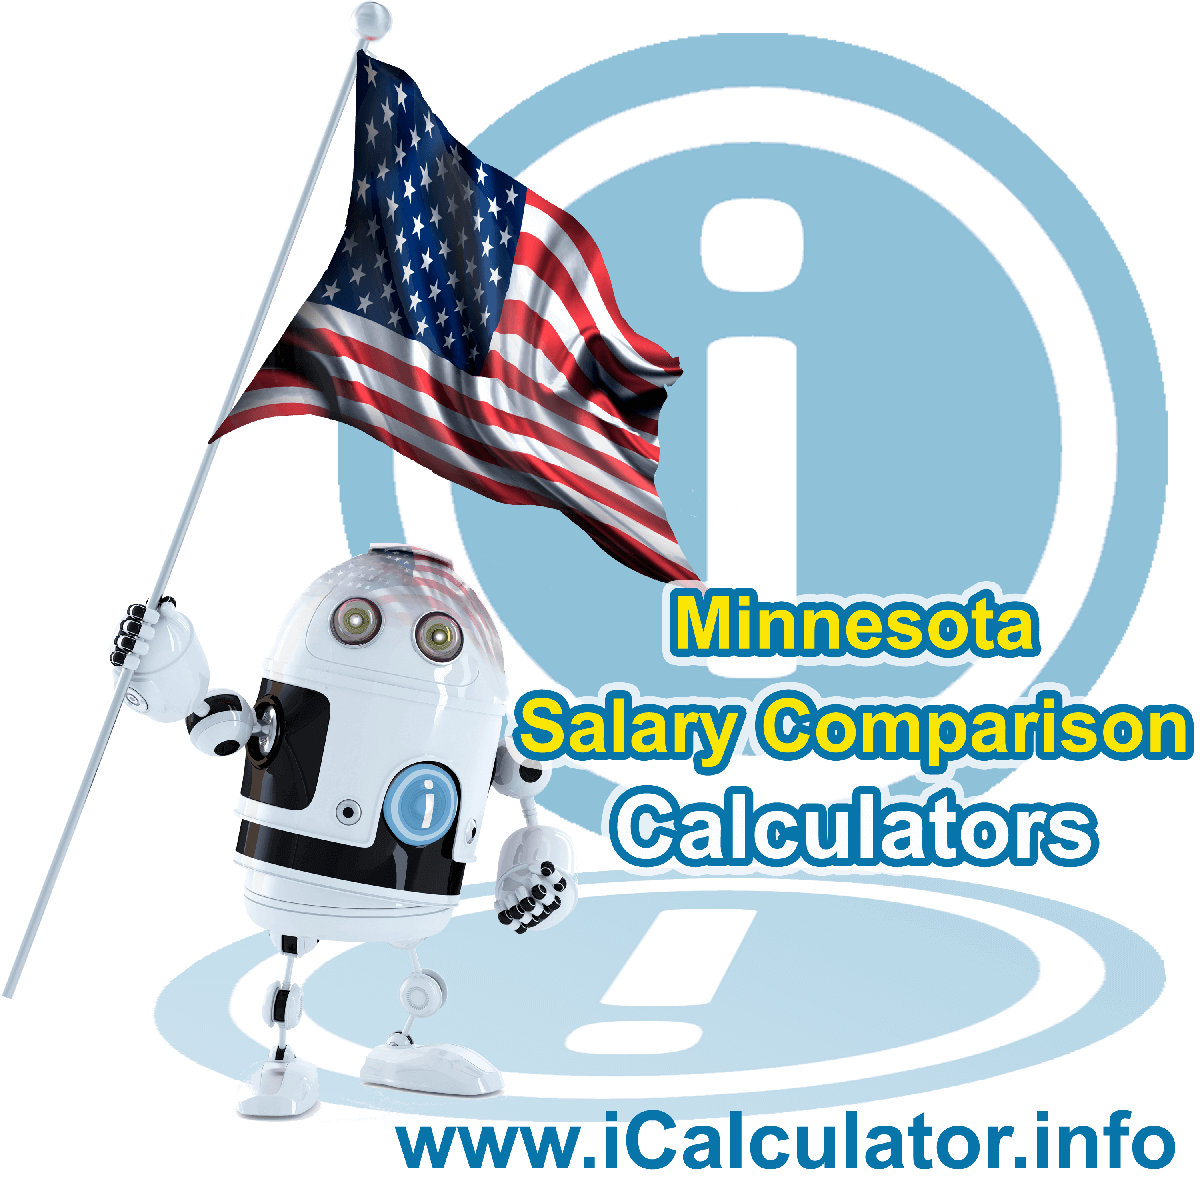 Minnesota Salary Comparison Calculator 2019 | iCalculator | The Minnesota Salary Comparison Calculator allows you to quickly calculate and compare upto 6 salaries in Minnesota or between other states for the 2019 tax year and historical tax years. Its an excellent tool for jobseekers, pay raise comparison and comparison of salaries between different US States